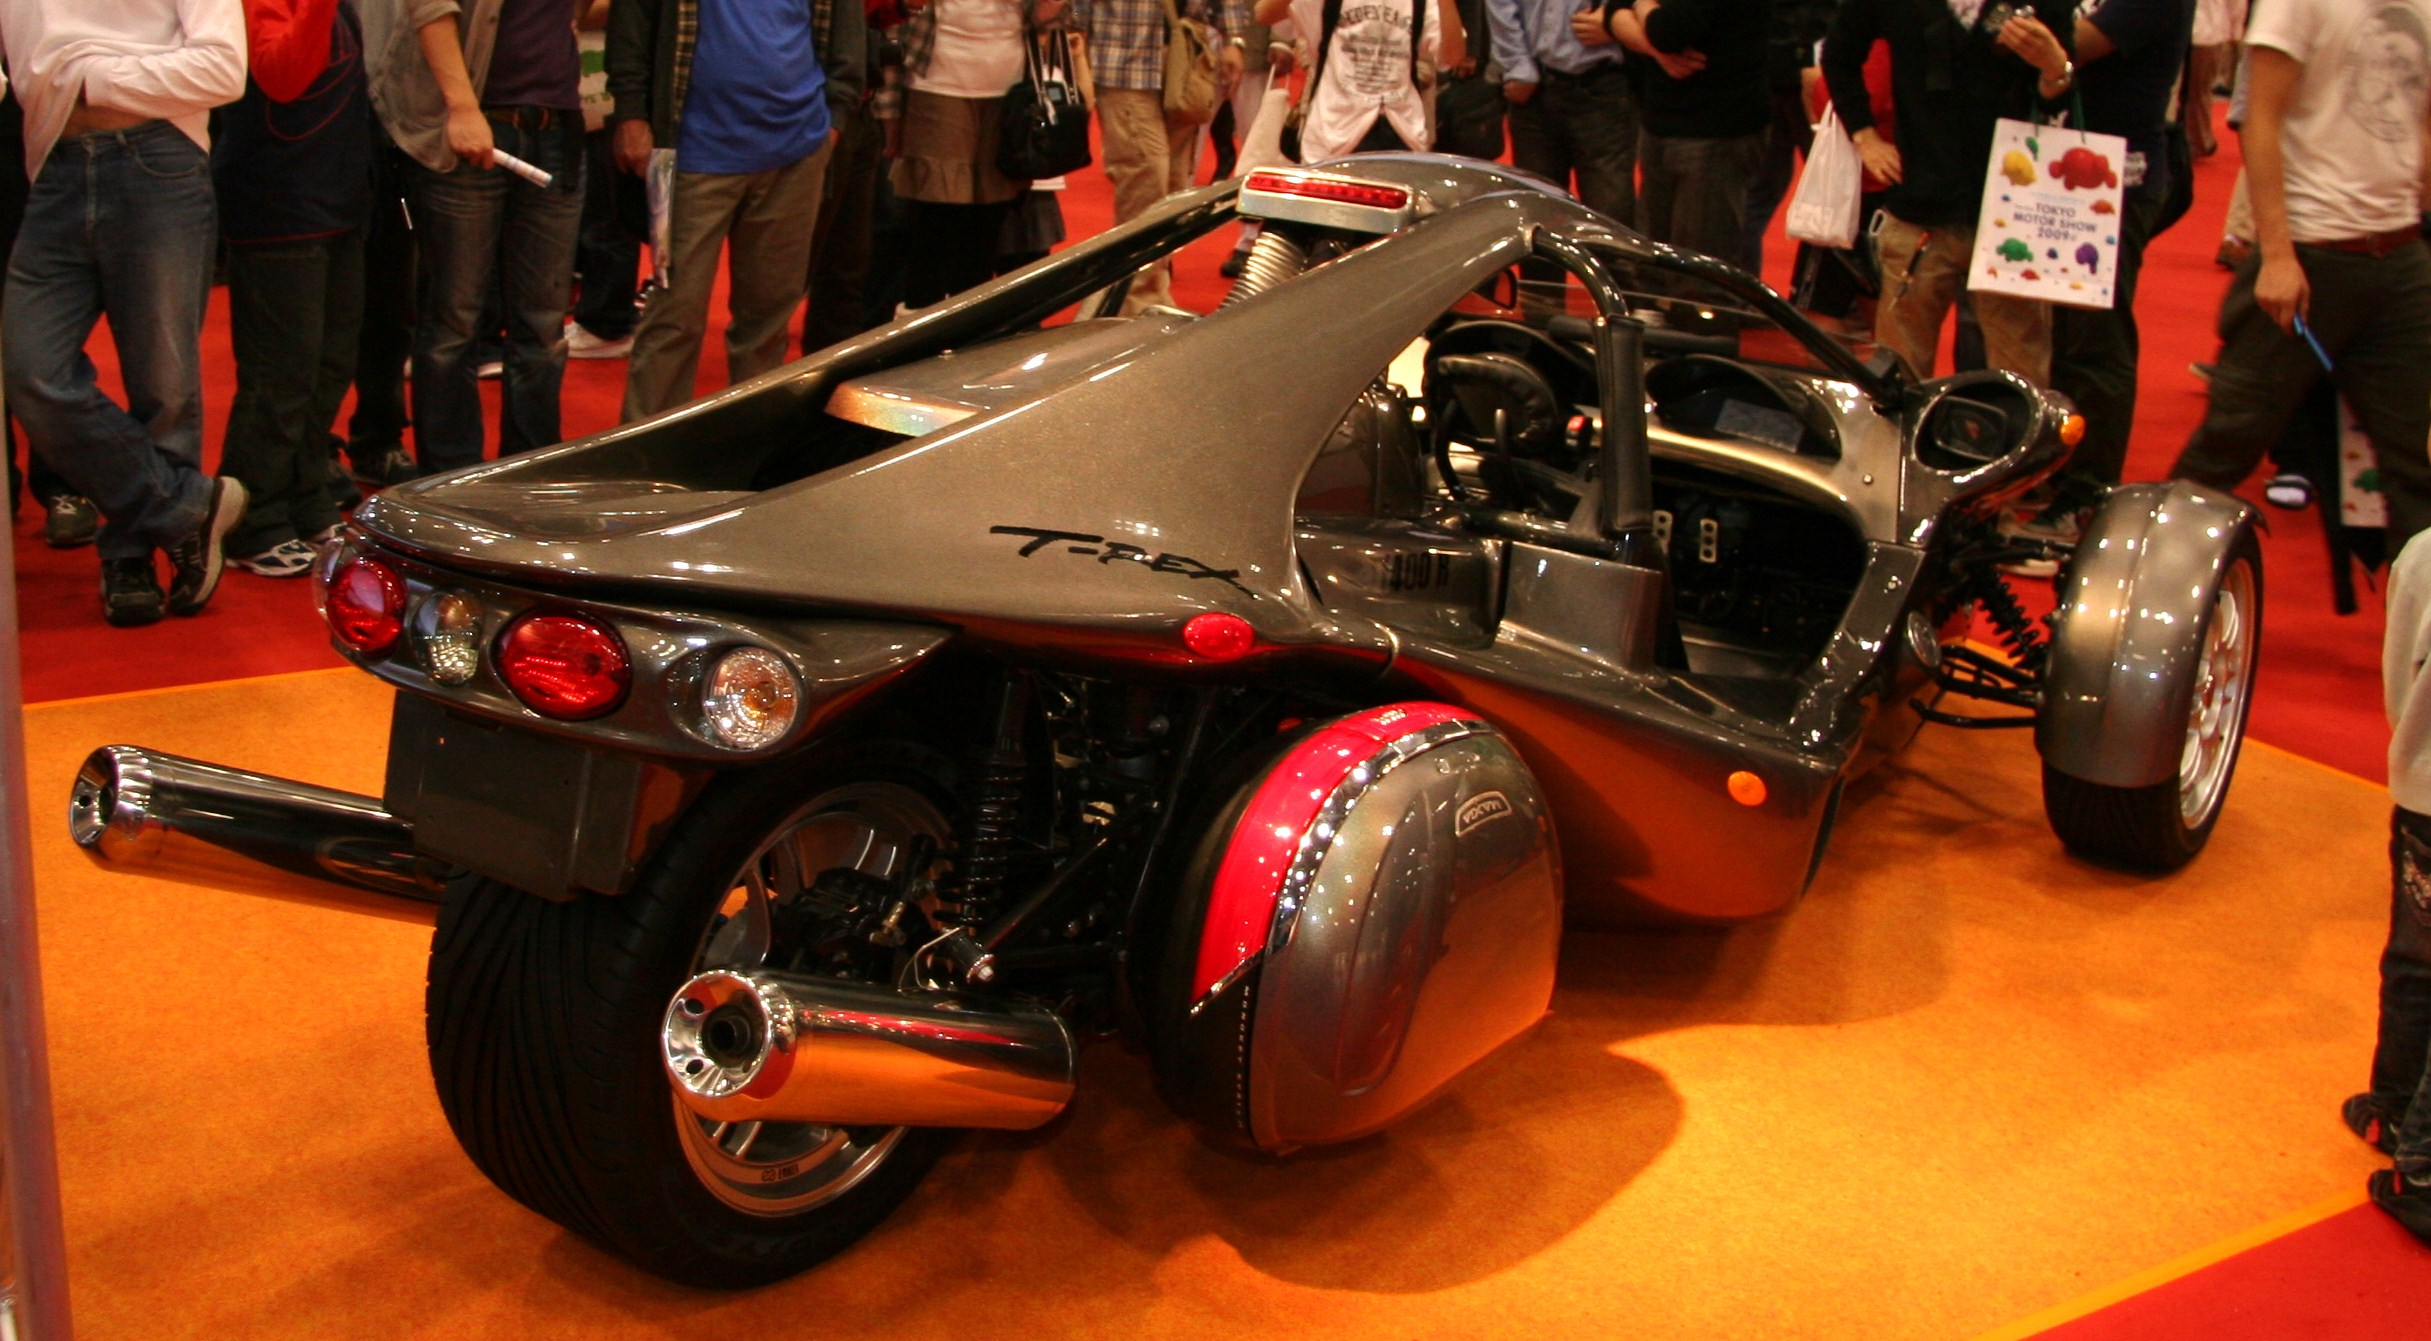 Filecampagna t rex rearg wikimedia commons filecampagna t rex rearg voltagebd Images